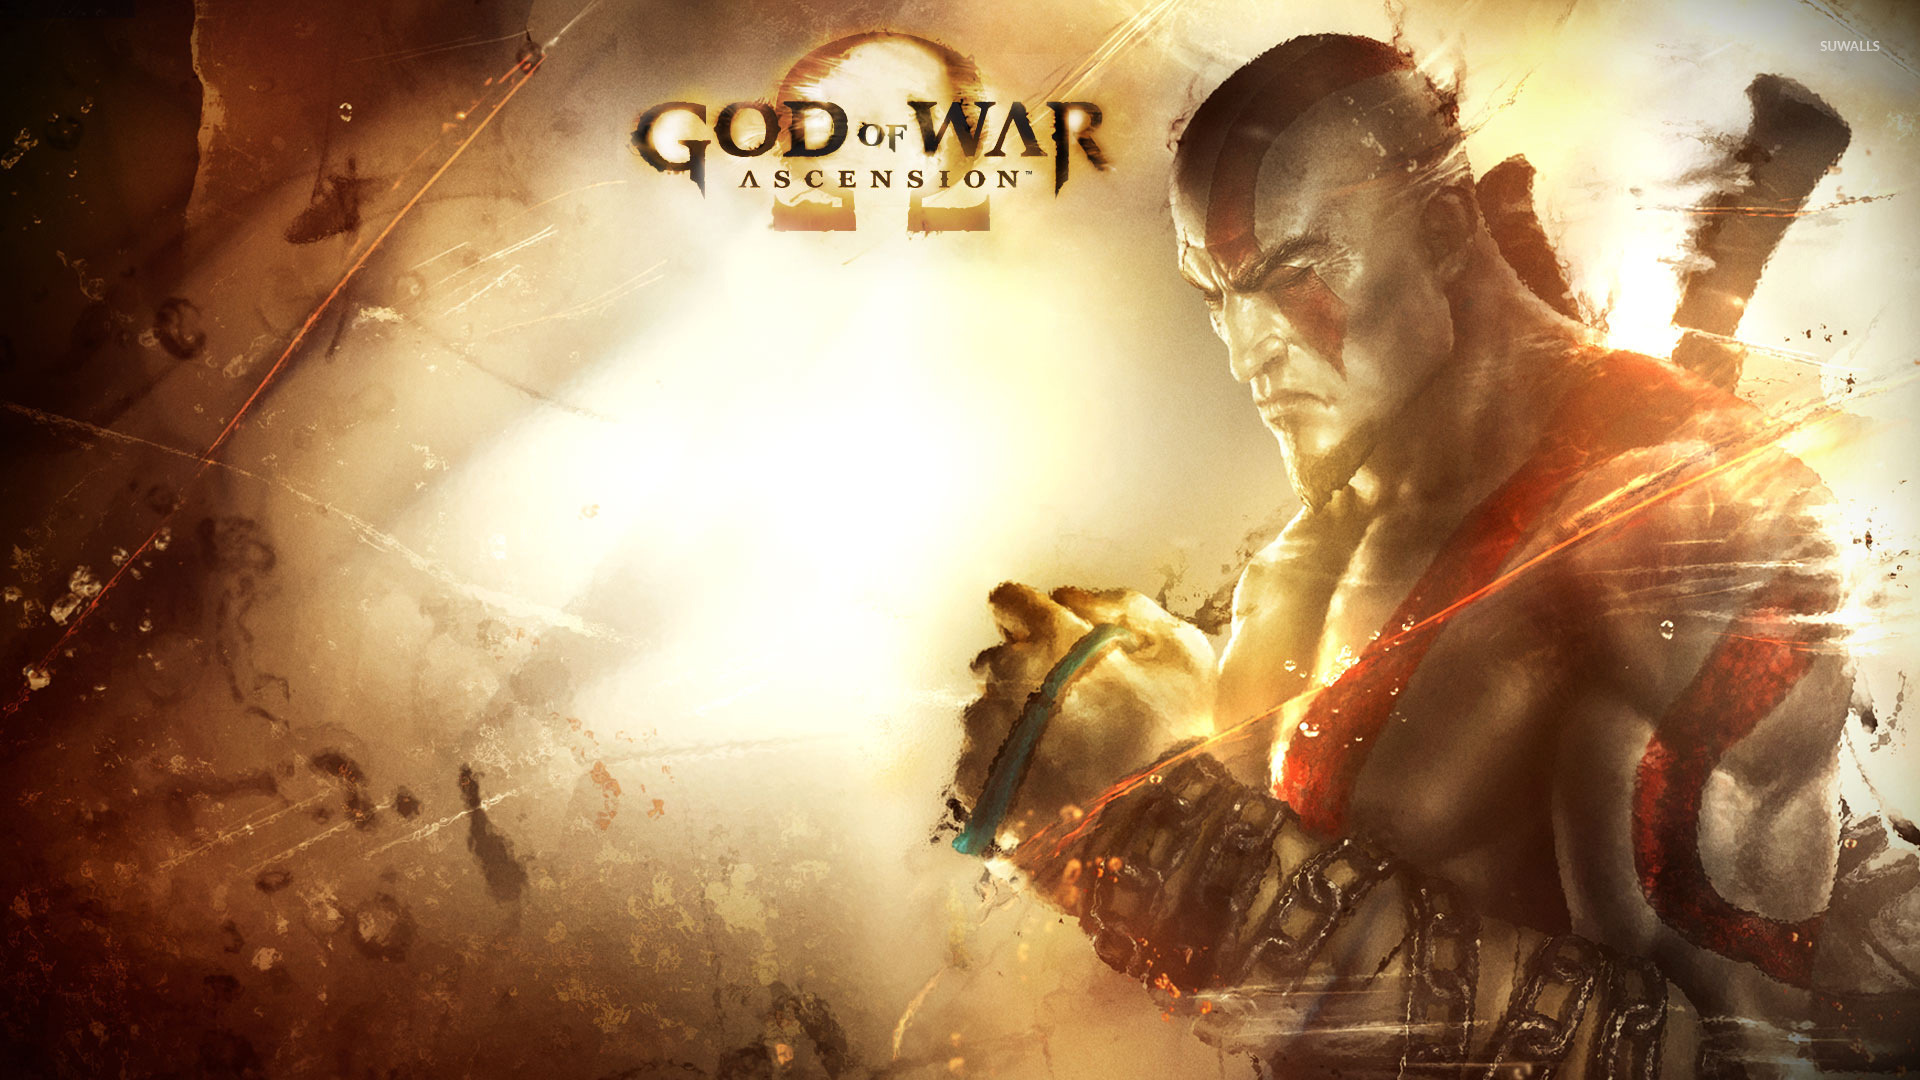 God of War: Ascension [2] wallpaper - Game wallpapers - #40804